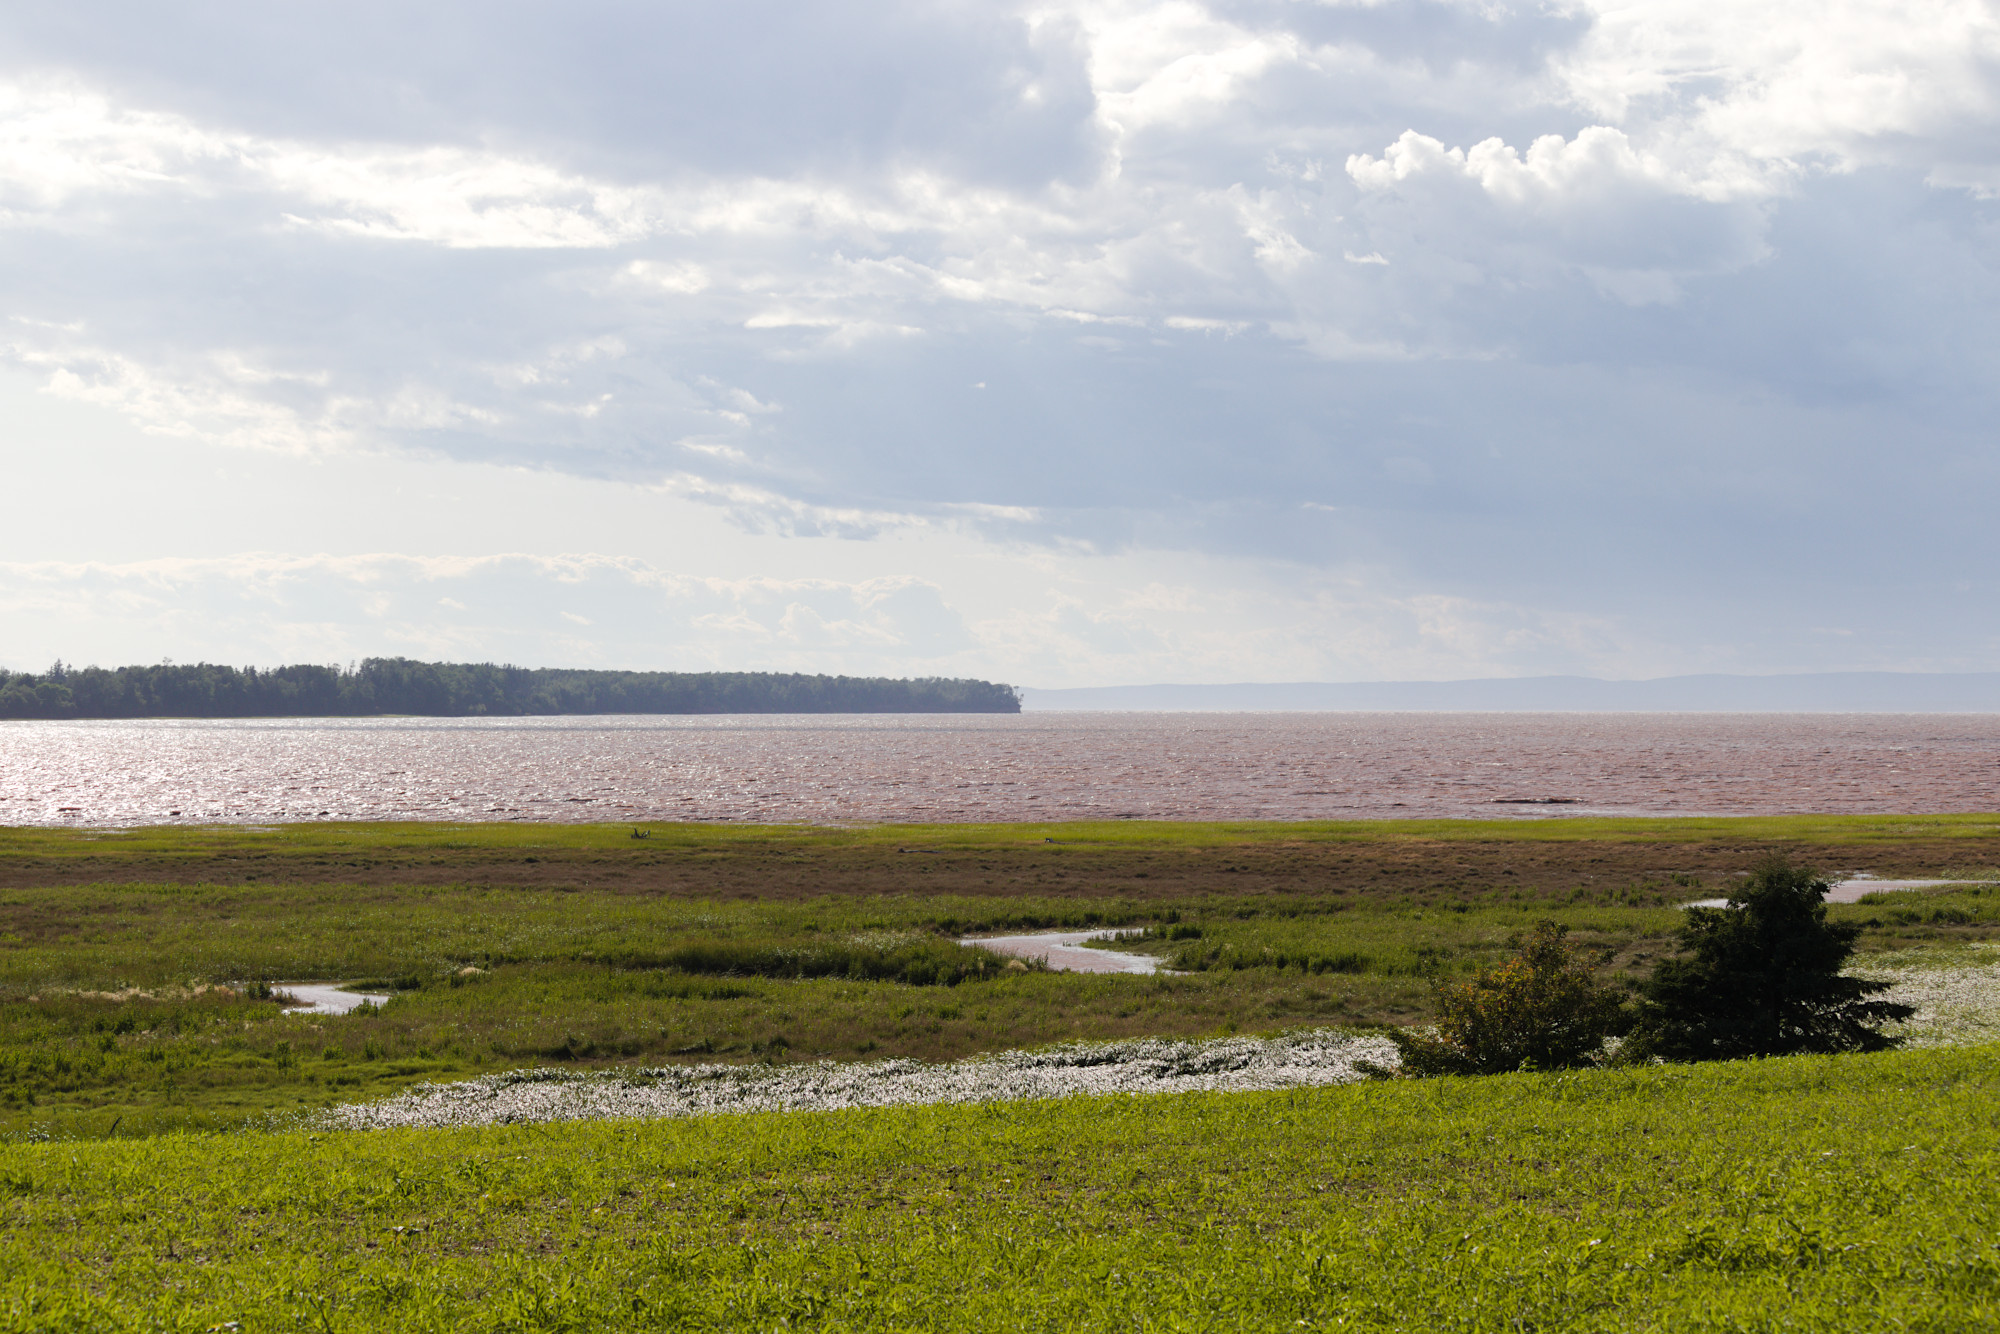 The mouth of the Shubenacadie River, viewed from the east side in Clifton, Colchester County. The western bank of the river (near Maitland) and the opposite coast of the Bay of Fundy (near Masstown) are visible in the background.